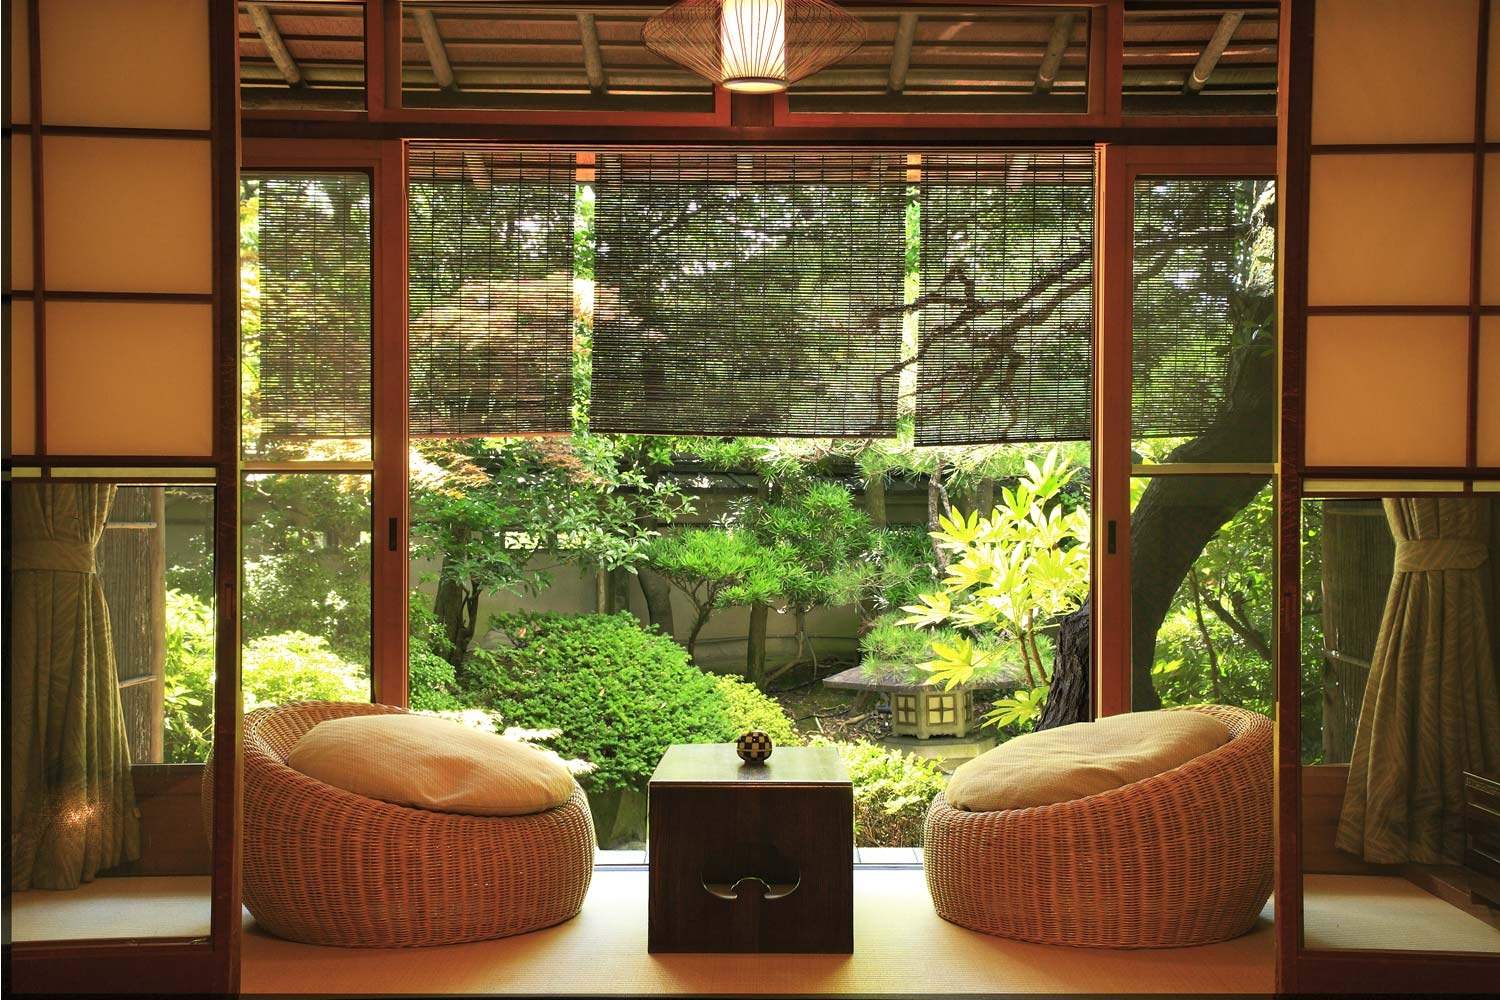 zen garden room interior design ideas